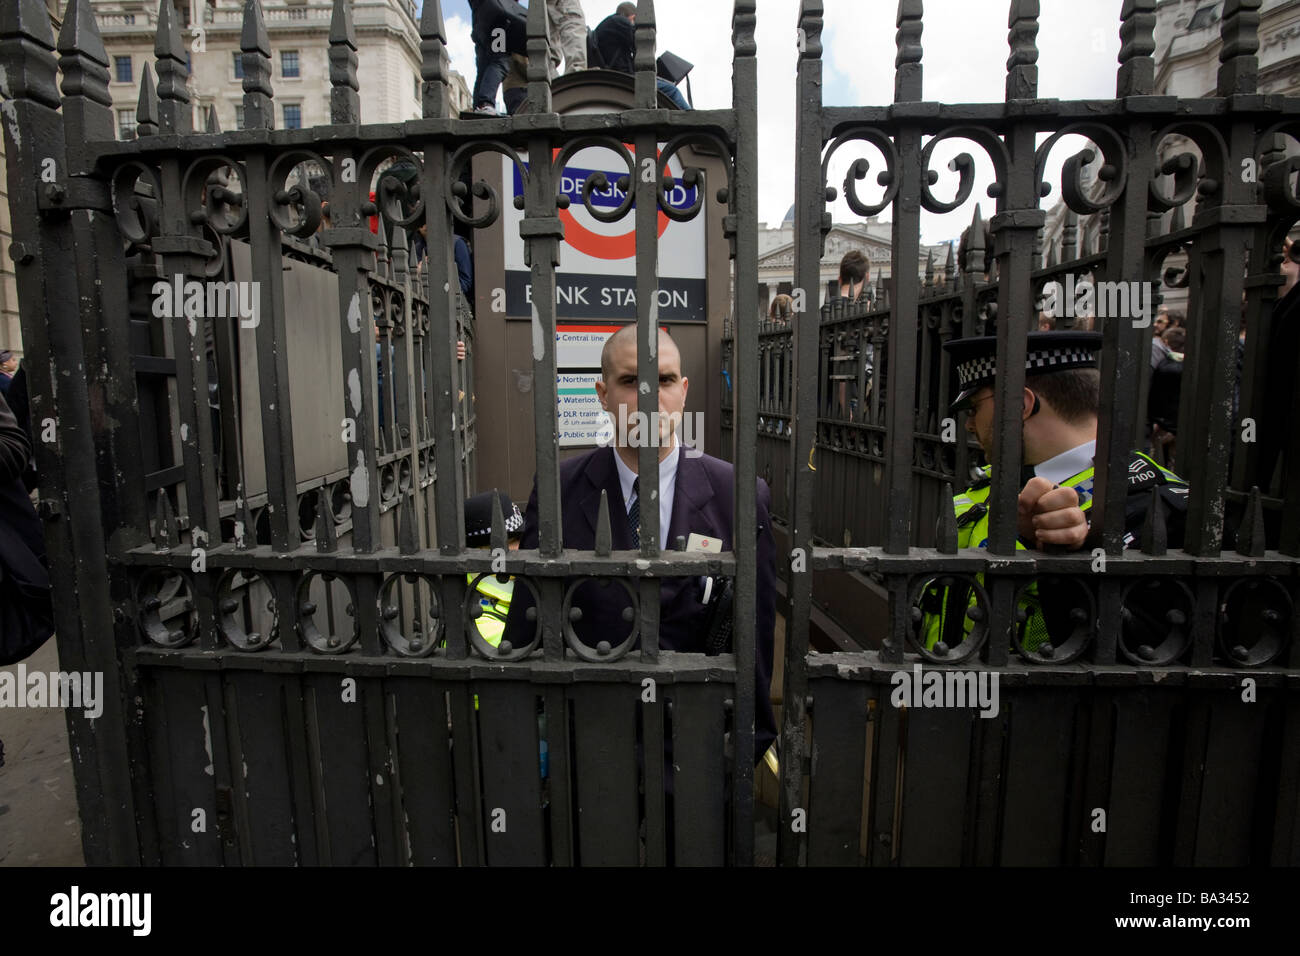 A Transport for London security official watches through the gated entrance to Bank underground station during G20 - Stock Image